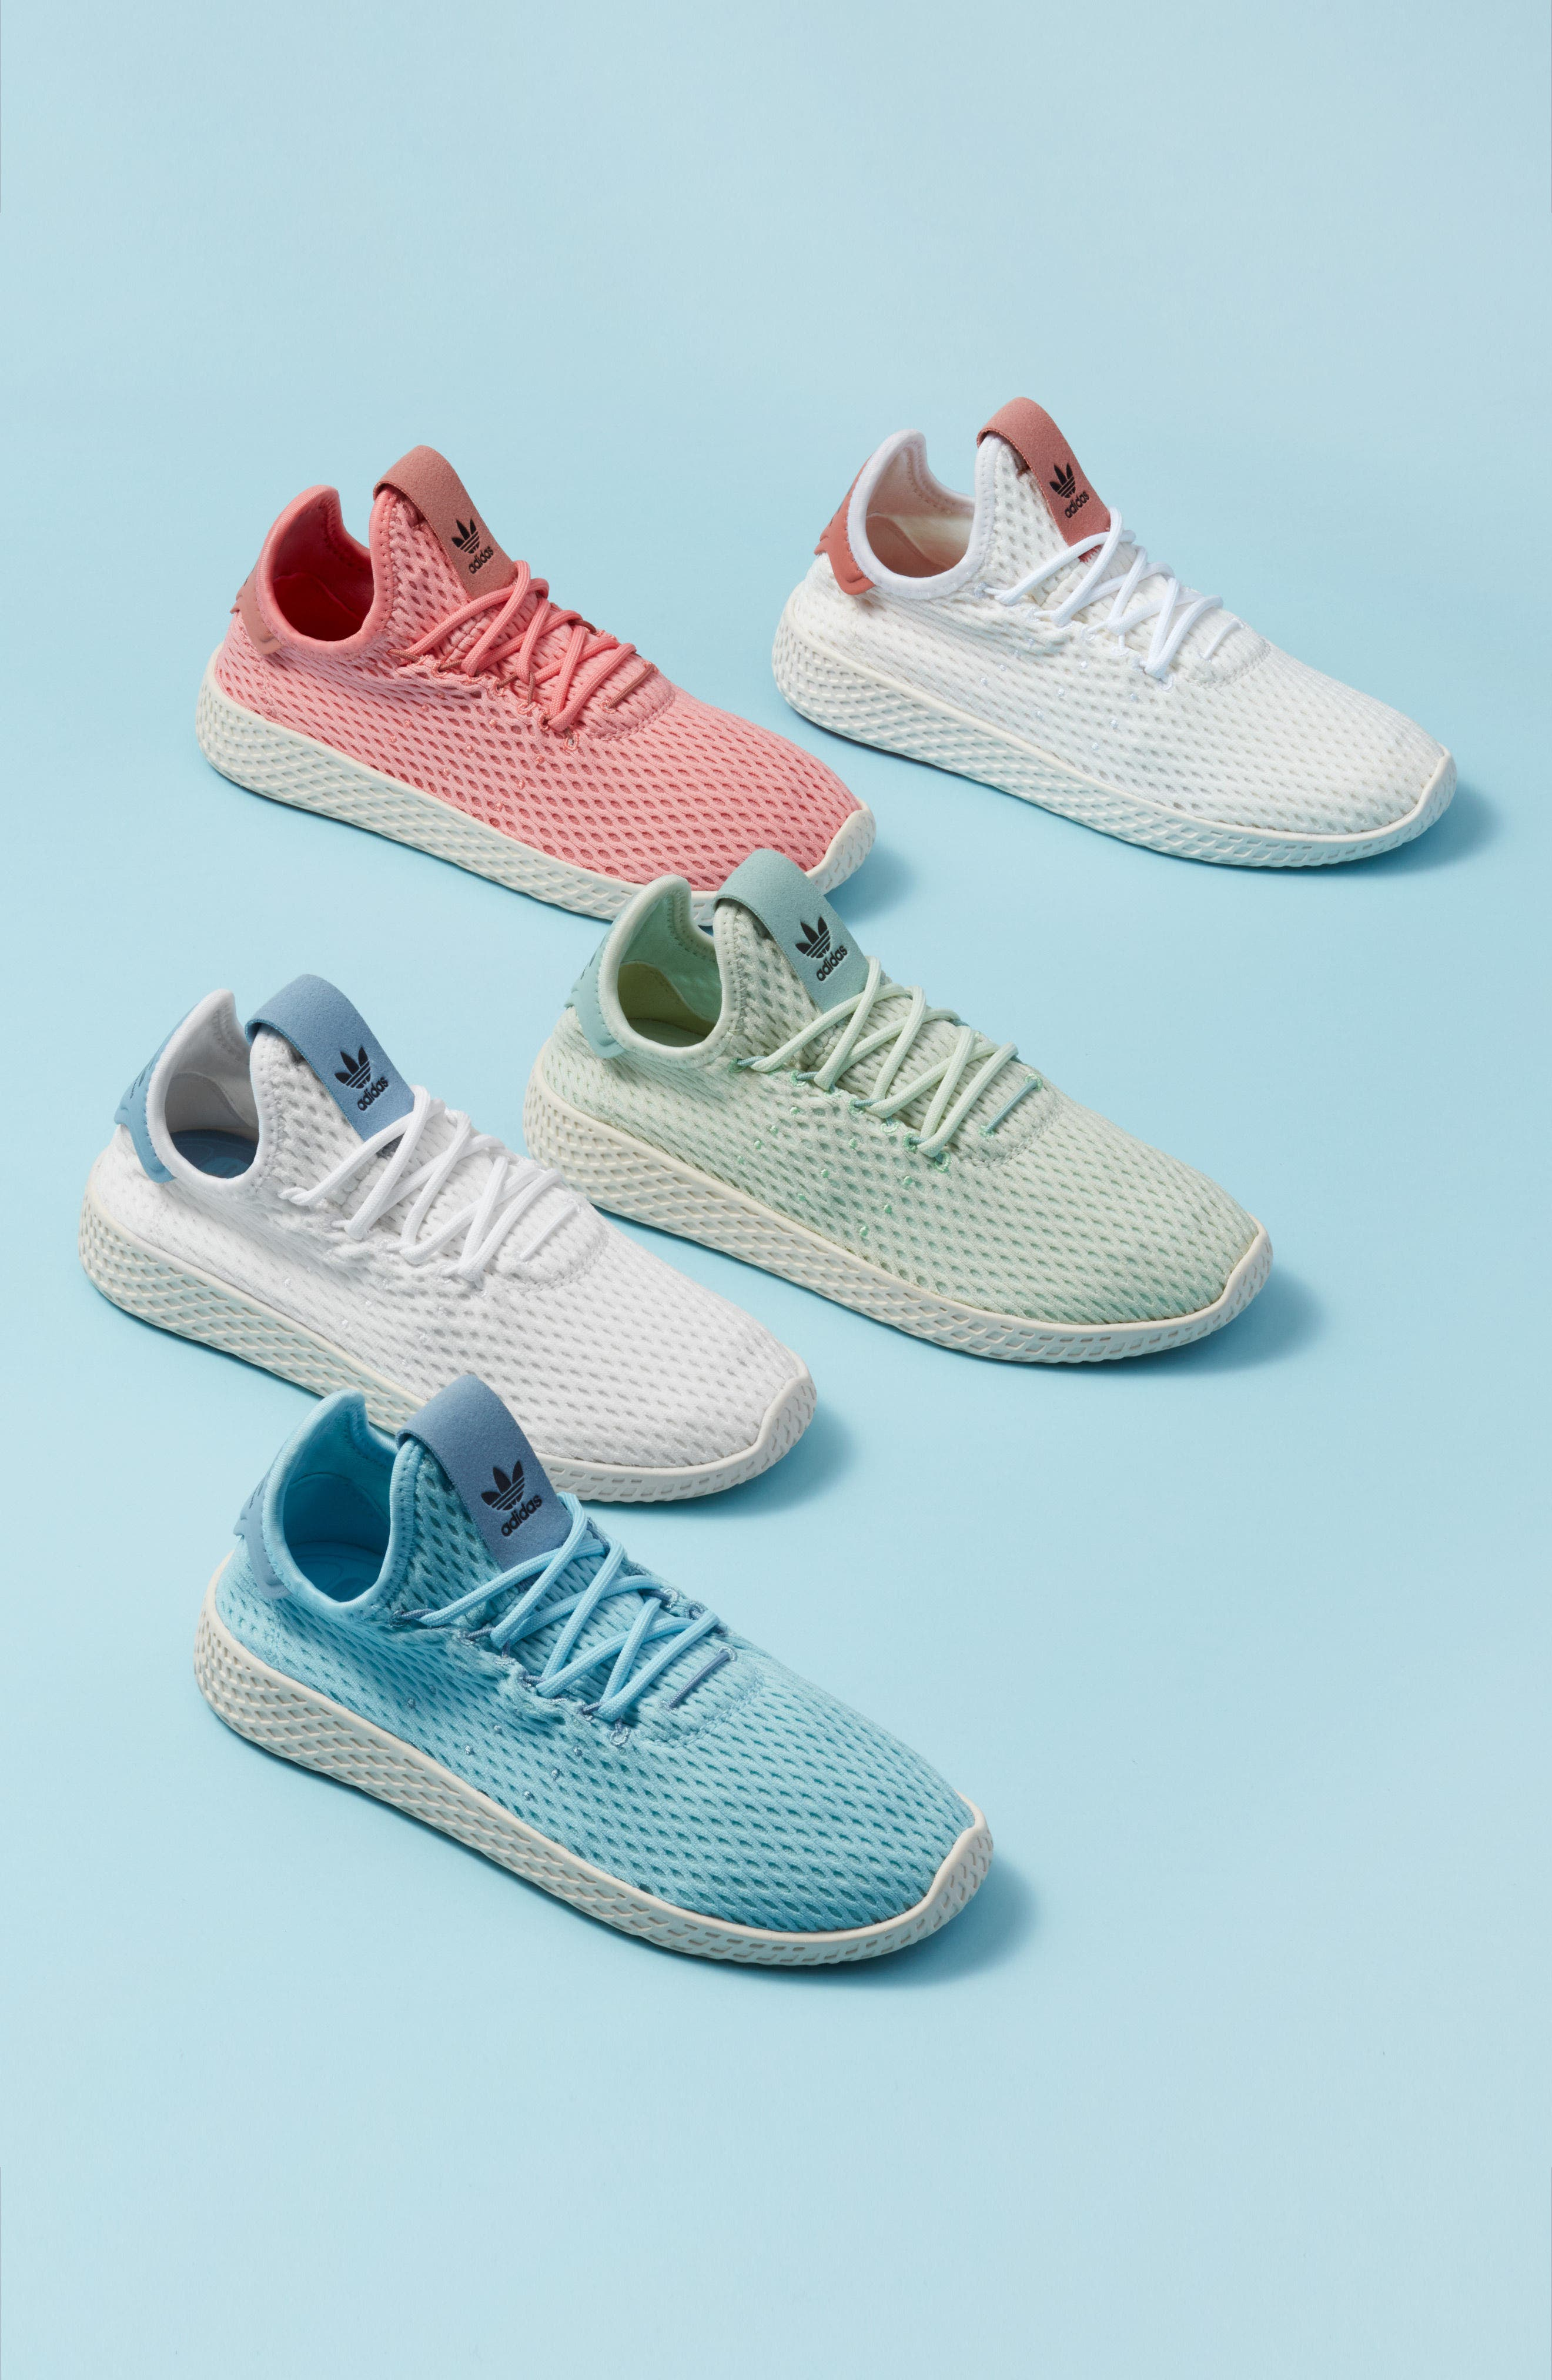 Originals x Pharrell Williams The Summers Mesh Sneaker,                             Alternate thumbnail 7, color,